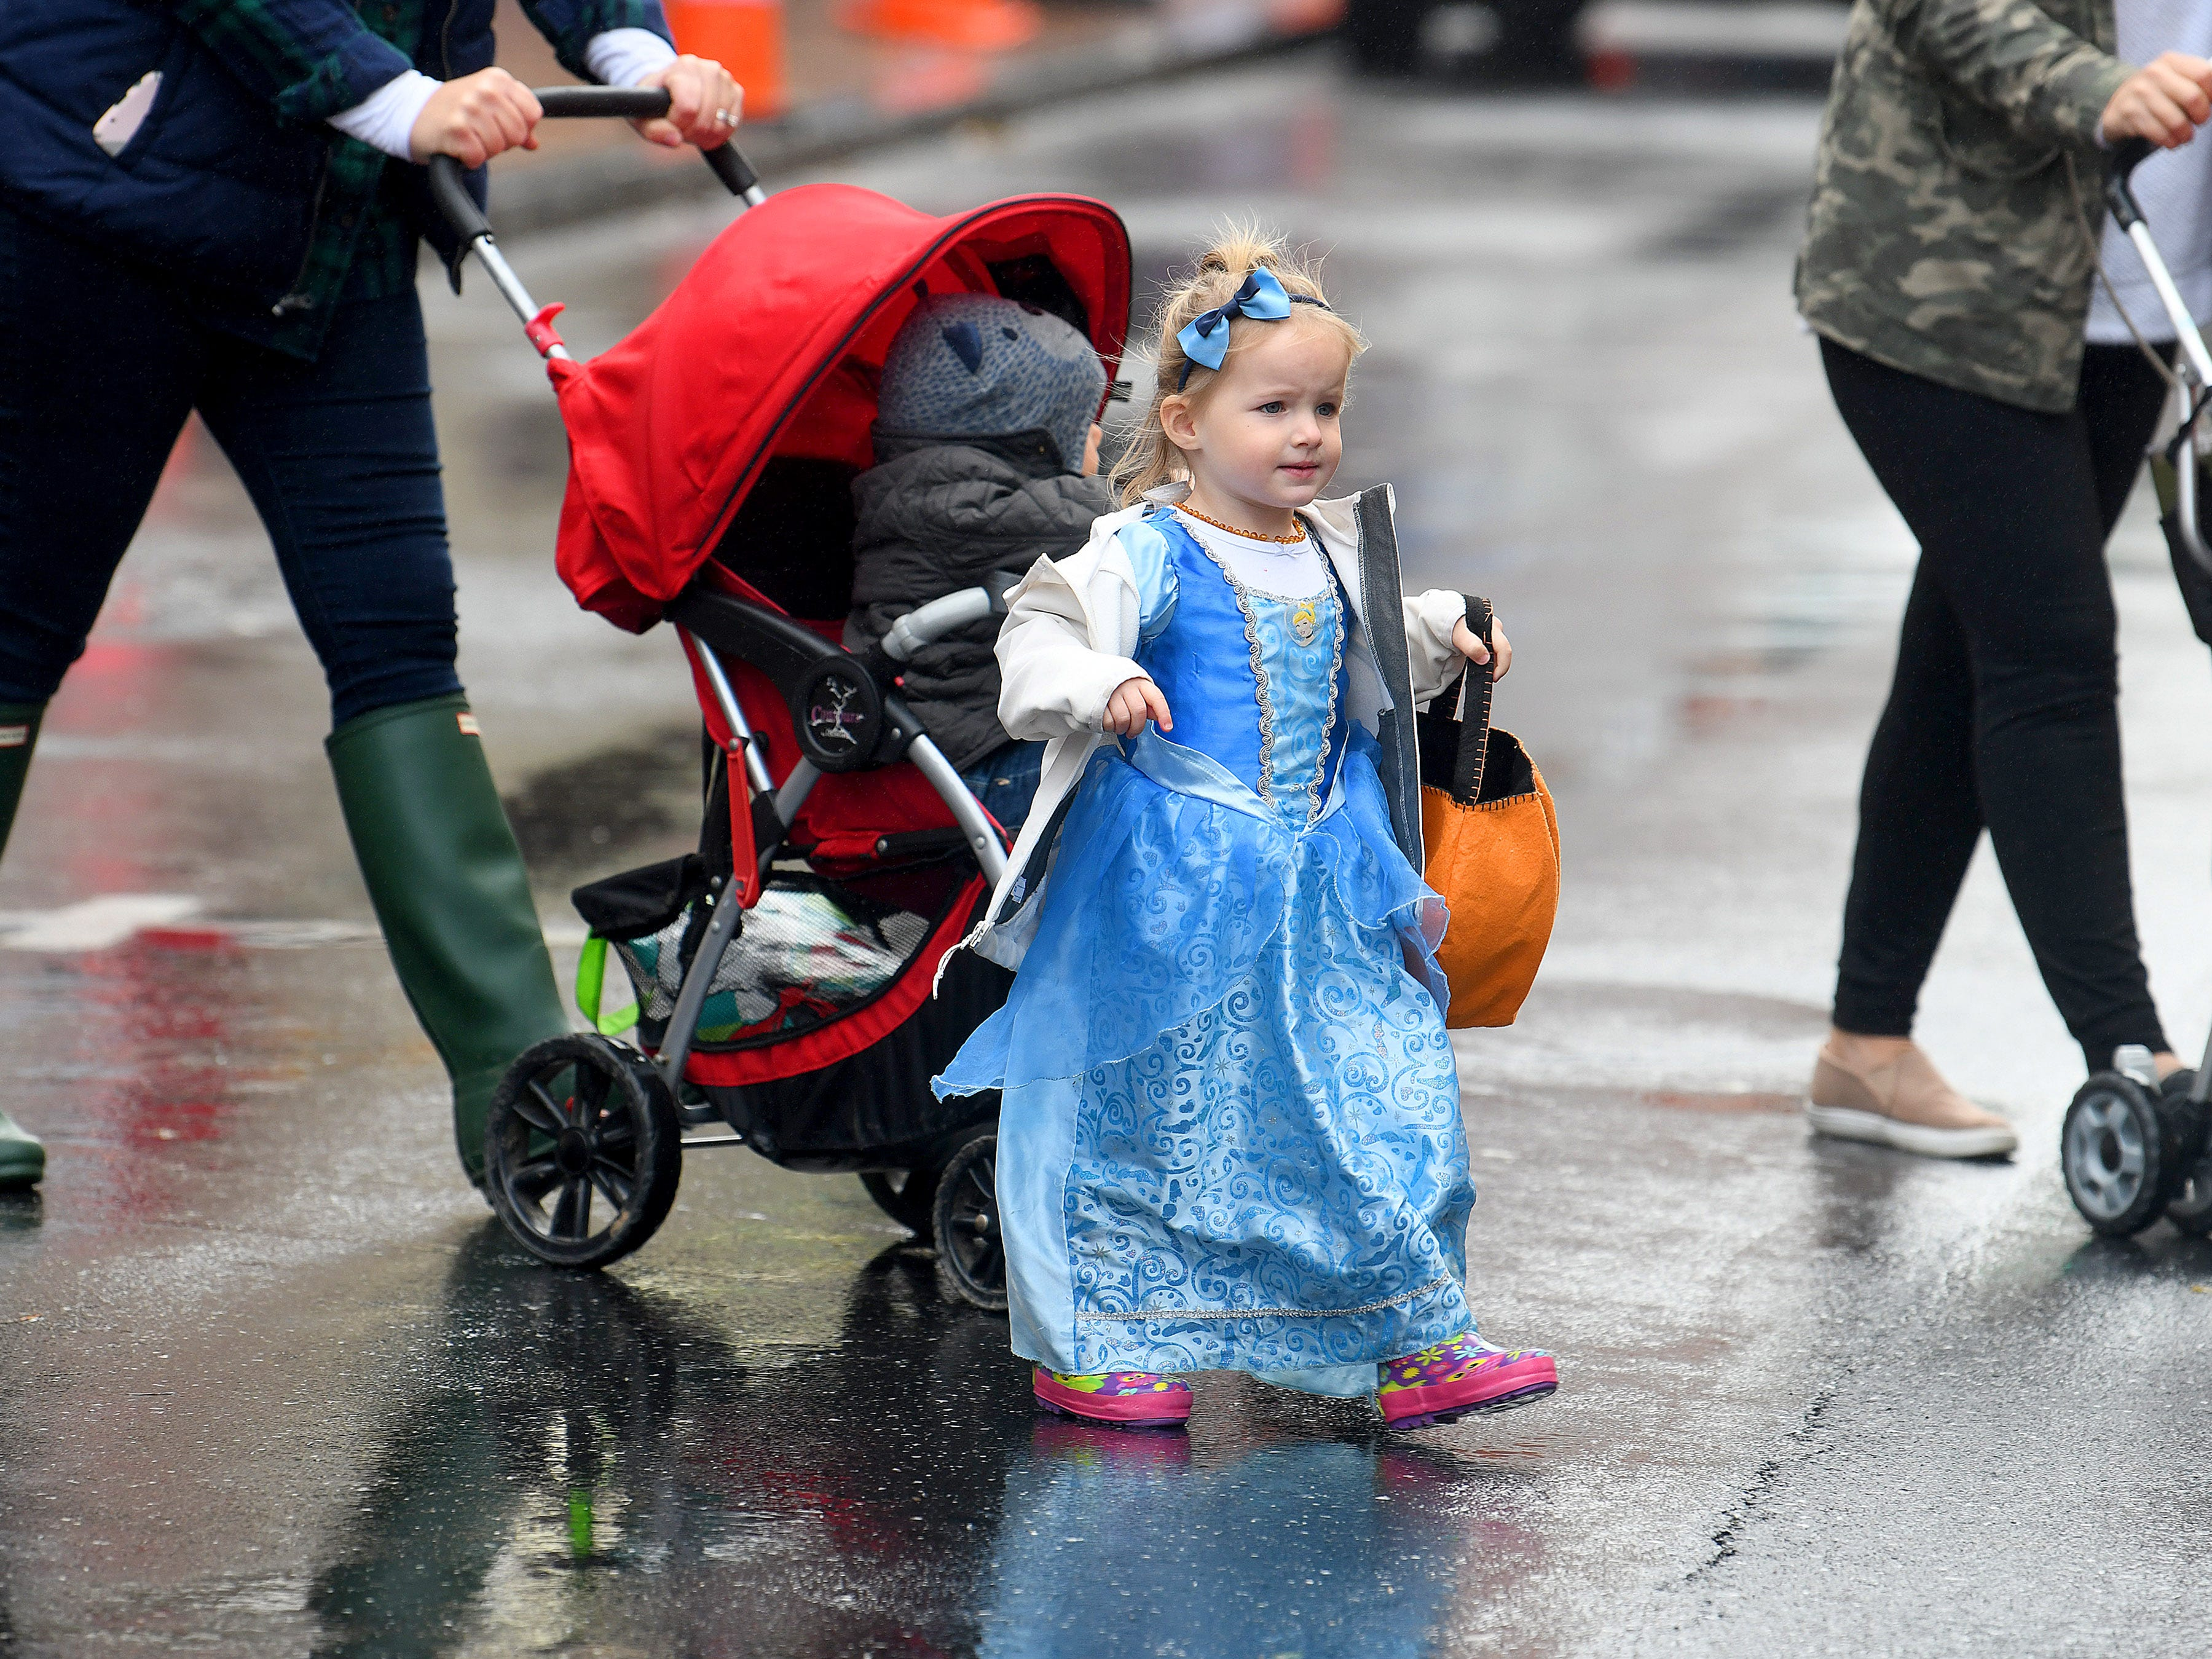 A young princess crosses the street for the candy on the opposite side while trick-or-treating in downtown Staunton on Saturday, Oct. 27, 2018.